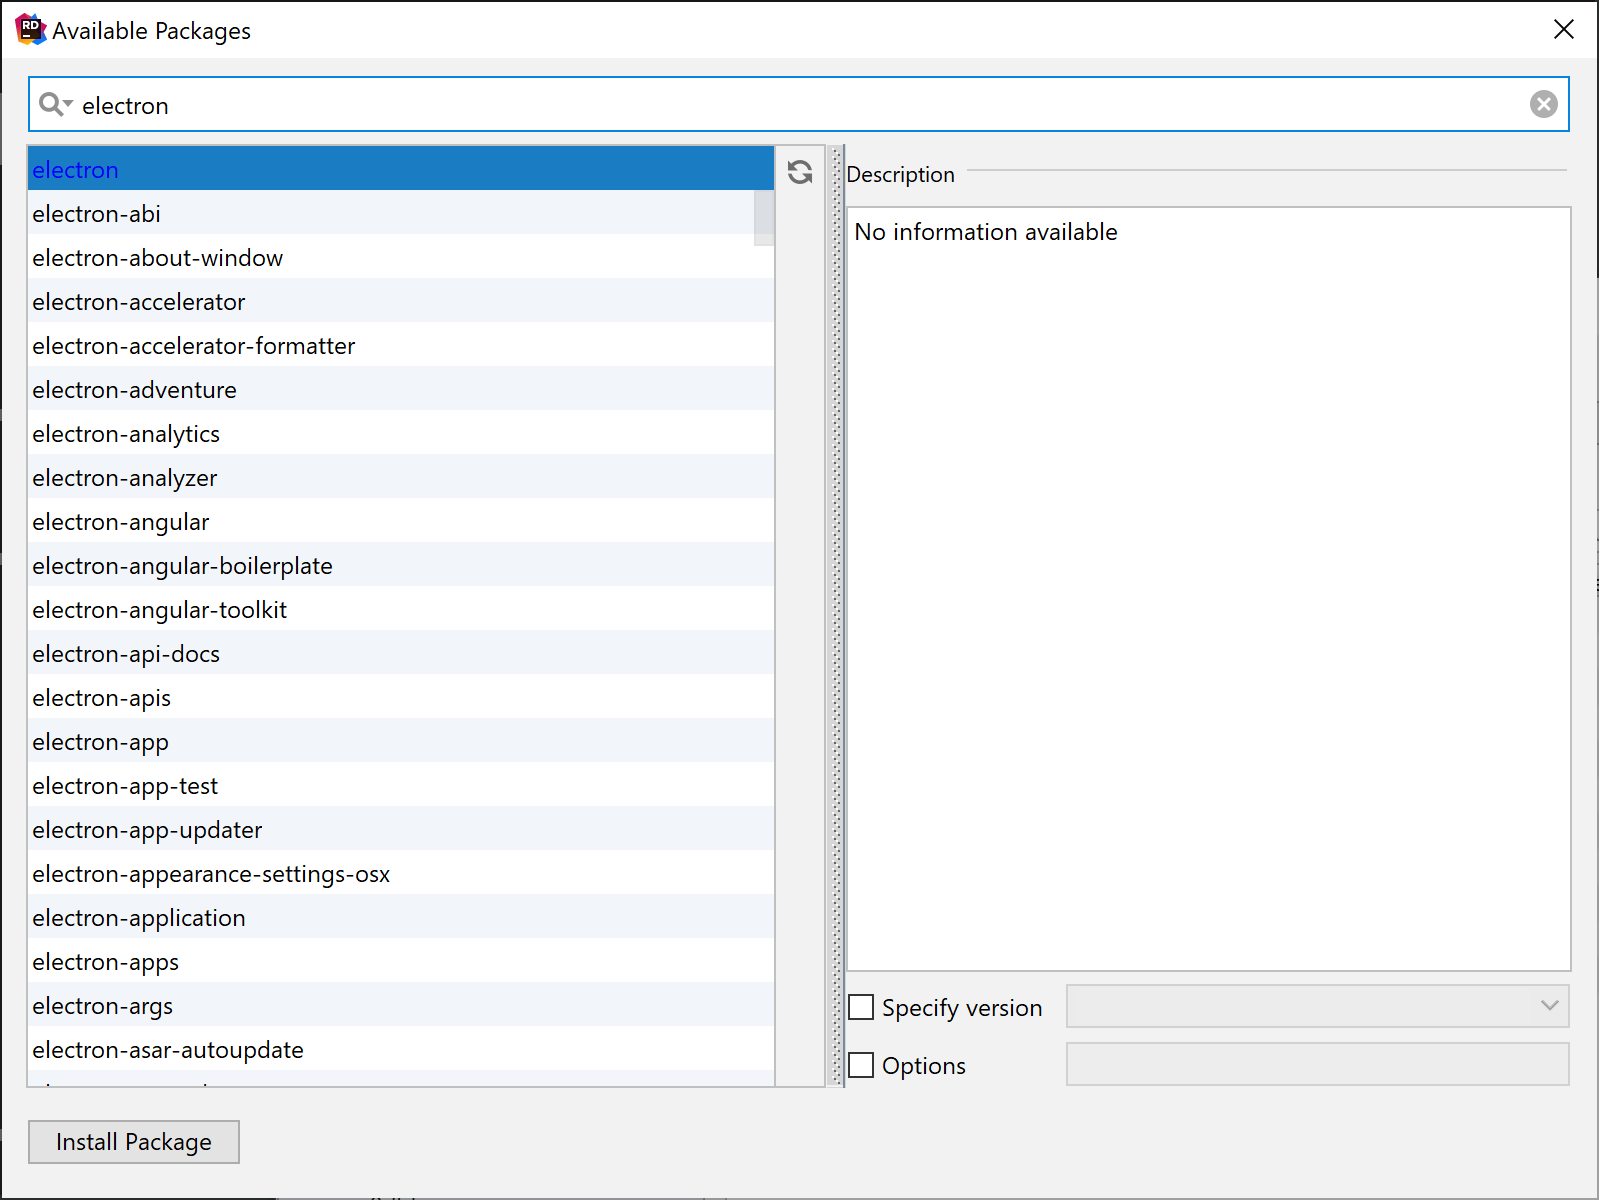 Available Packages dialog searching